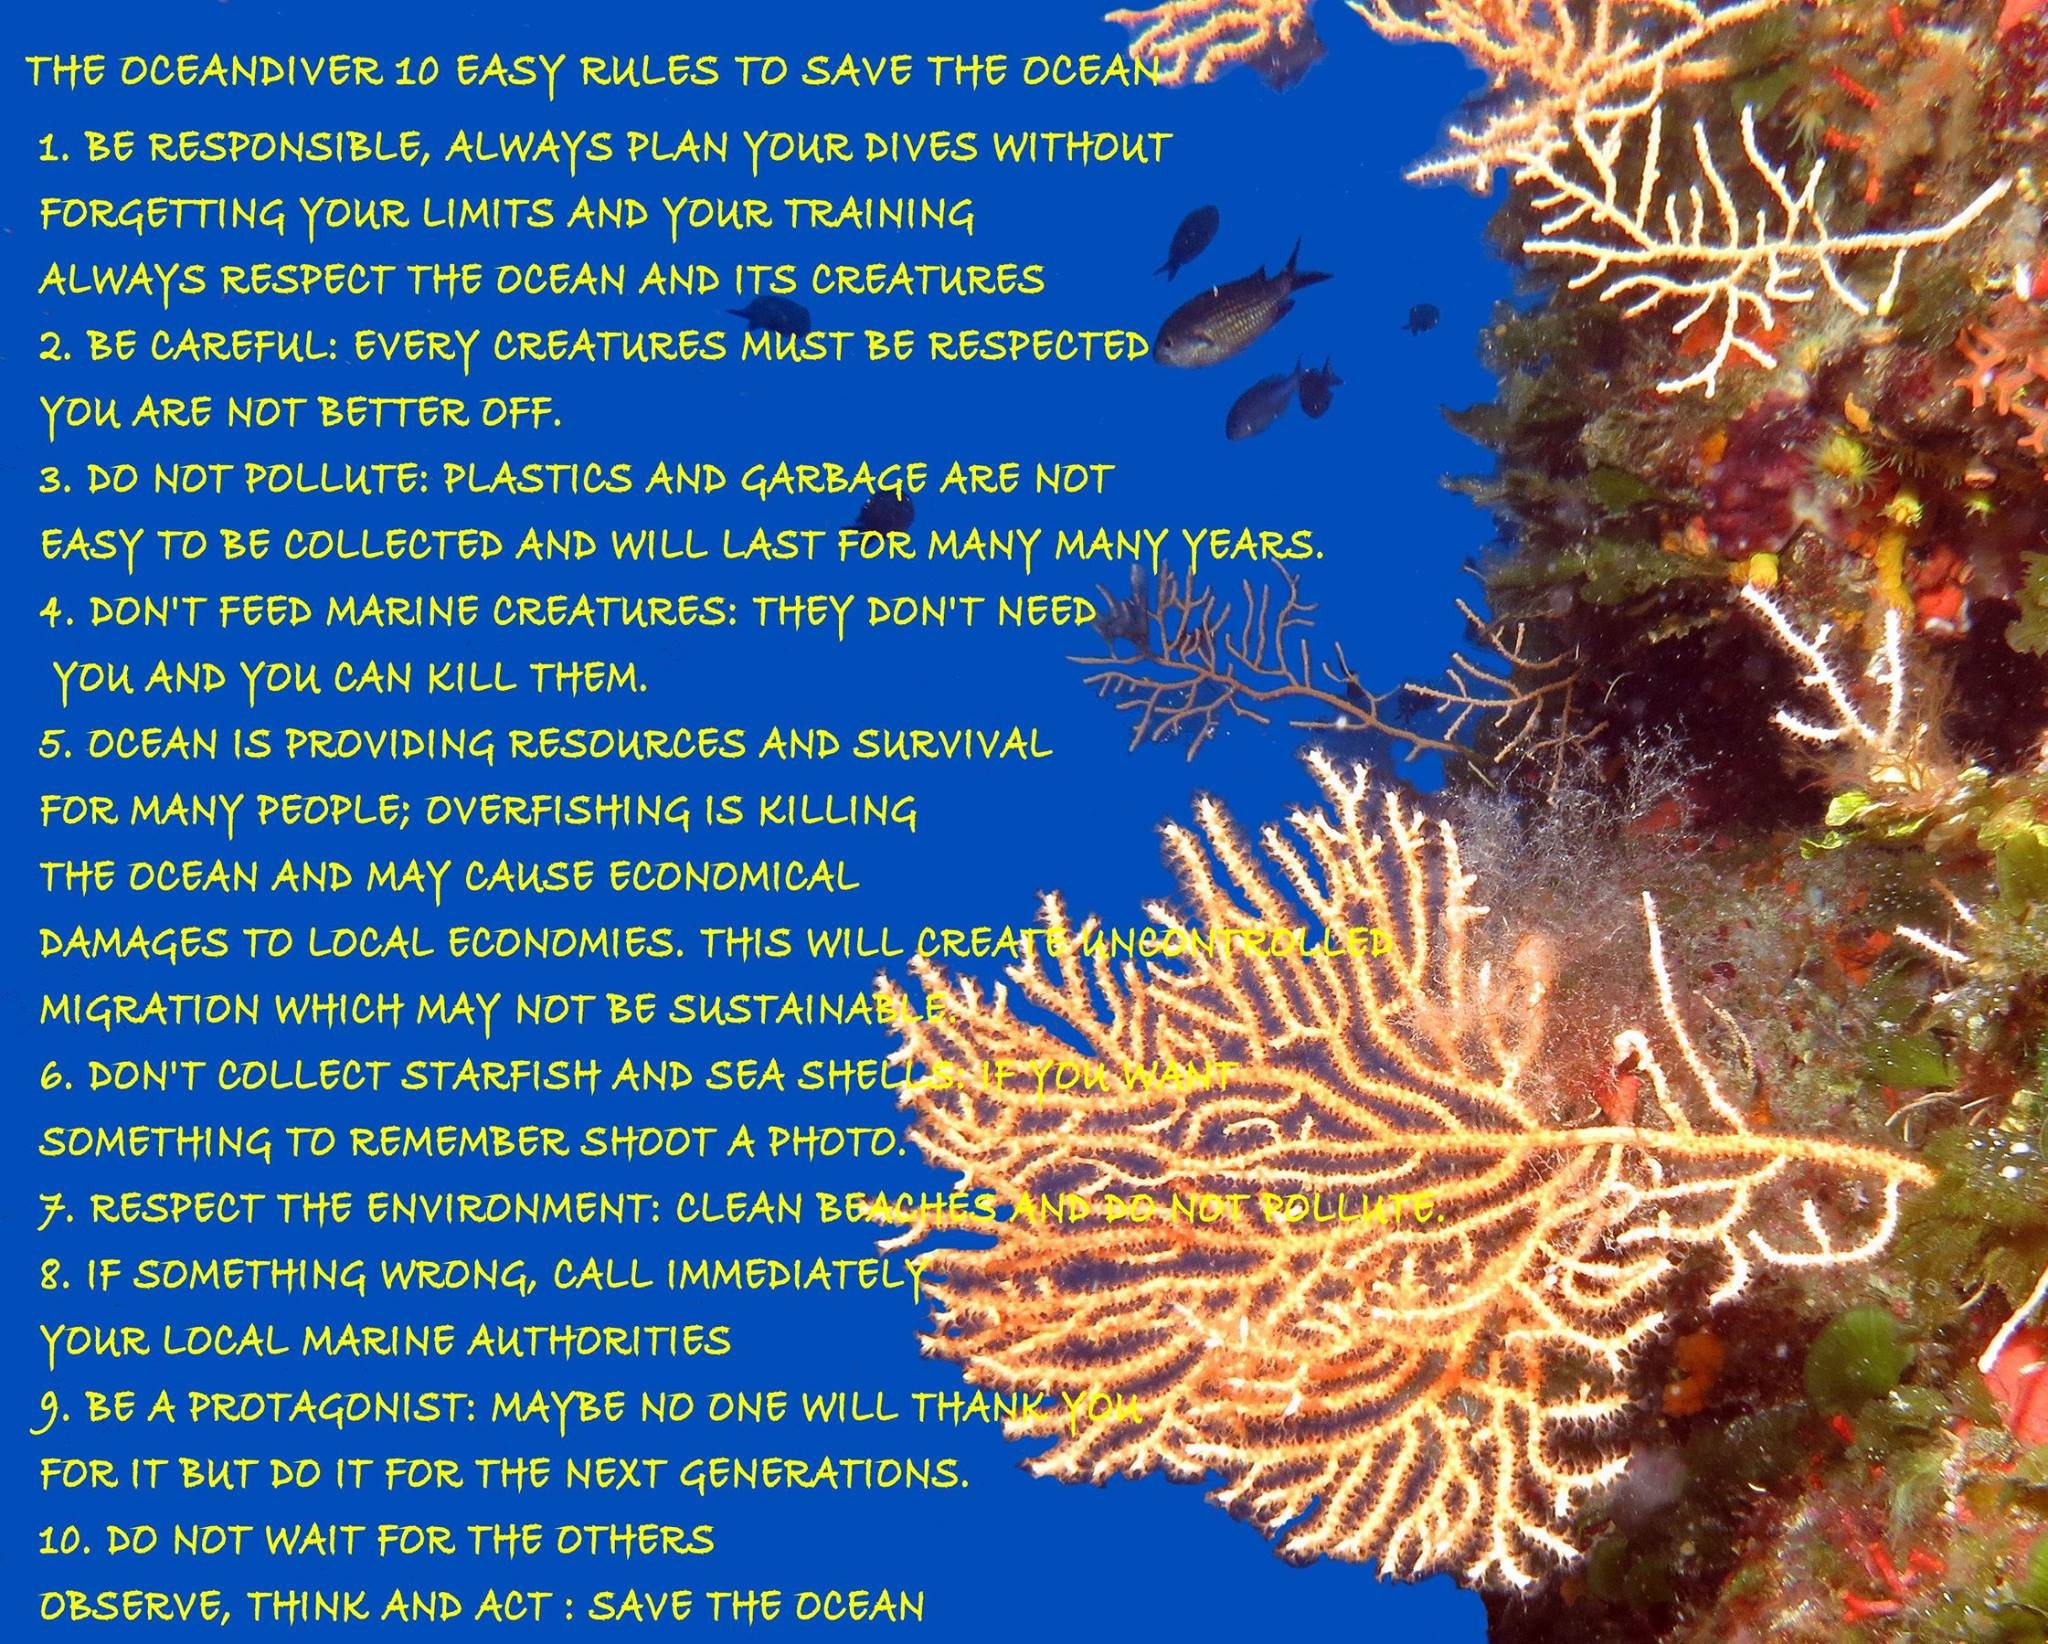 Ocean4future: 10 Easy rules to save the ocean by Oceandiver to be printed and/or shared